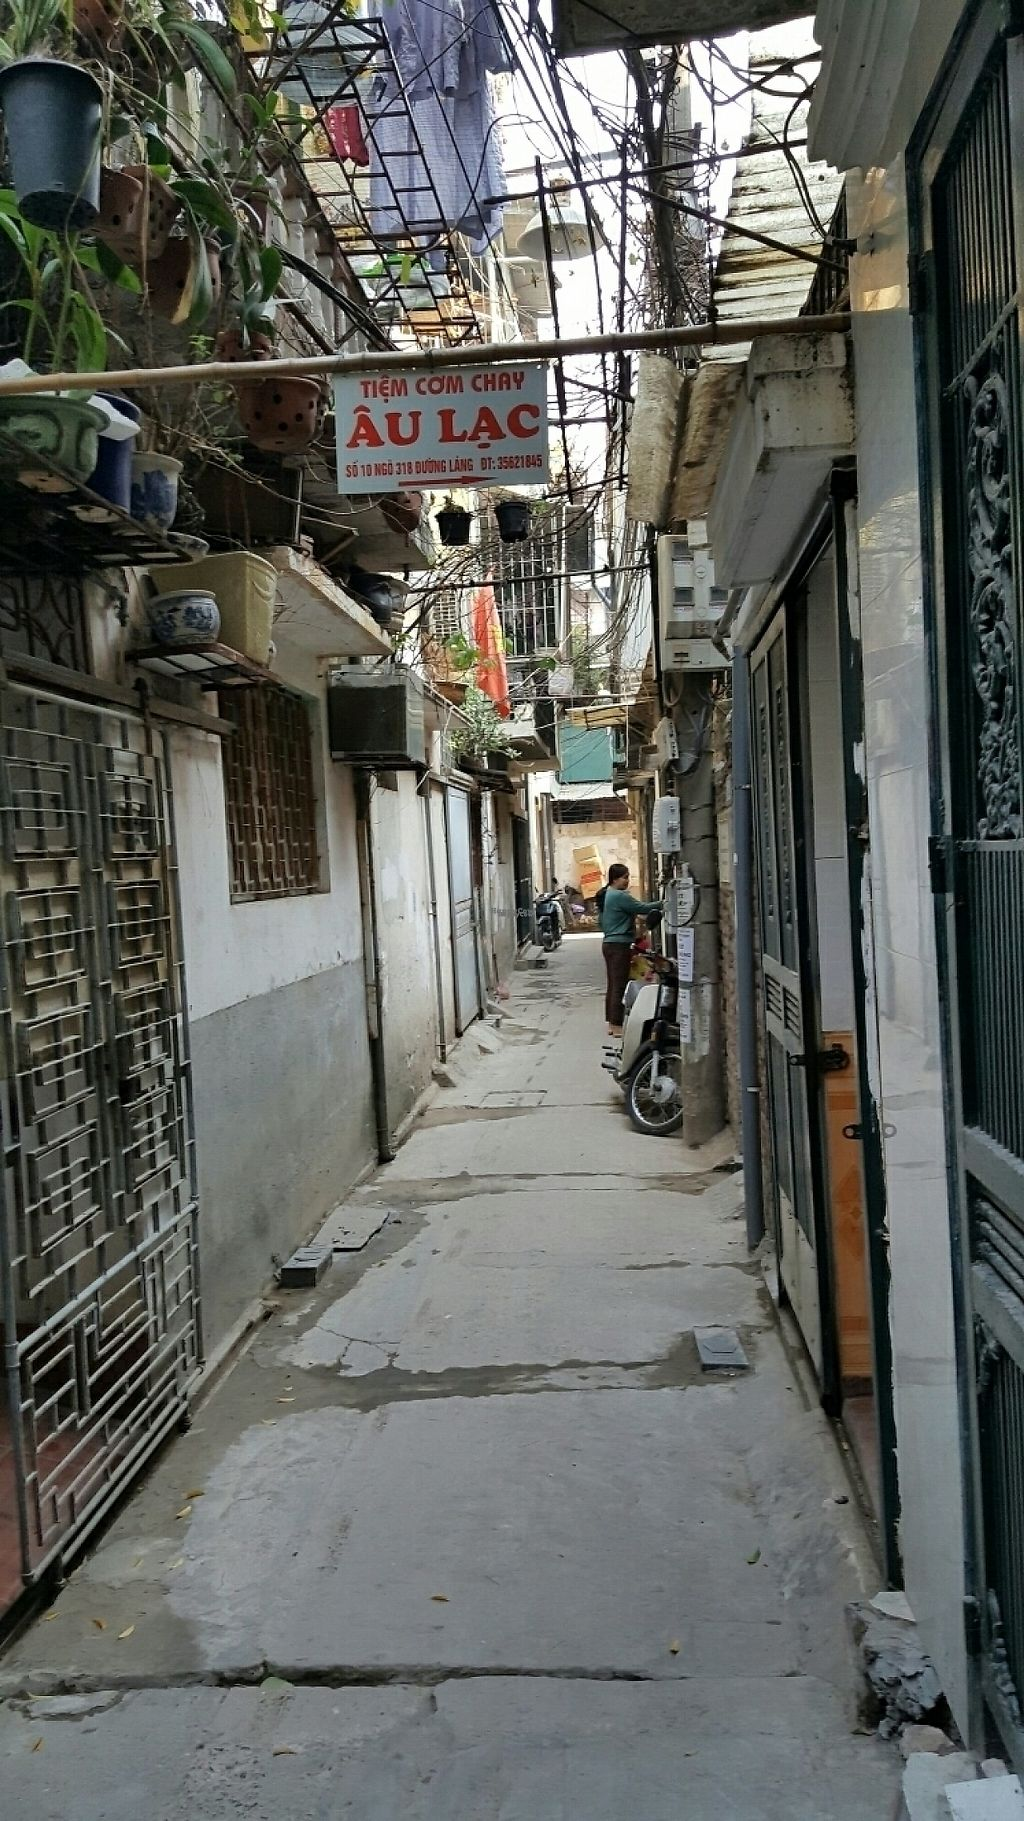 "Photo of Au Lac - Duong Lang  by <a href=""/members/profile/yehadut"">yehadut</a> <br/>You have to go down a narrow alley, including two bends, until you see this sign <br/> December 9, 2016  - <a href='/contact/abuse/image/48867/198443'>Report</a>"